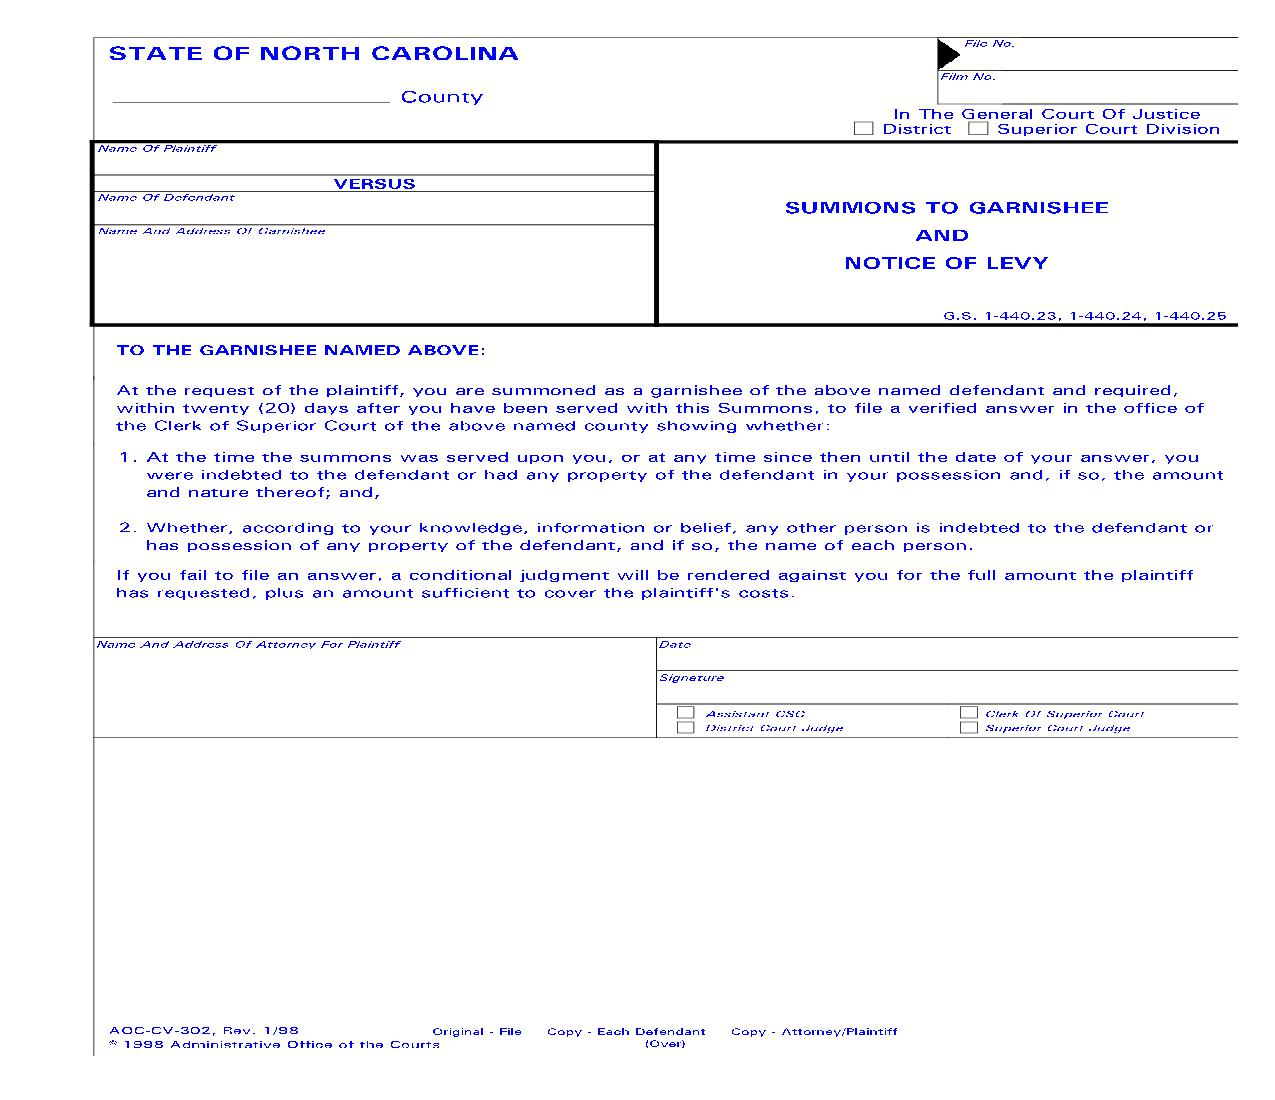 Summons To Garnishee And Notice Of Levy {CV-302} | Pdf Fpdf Doc Docx | North Carolina